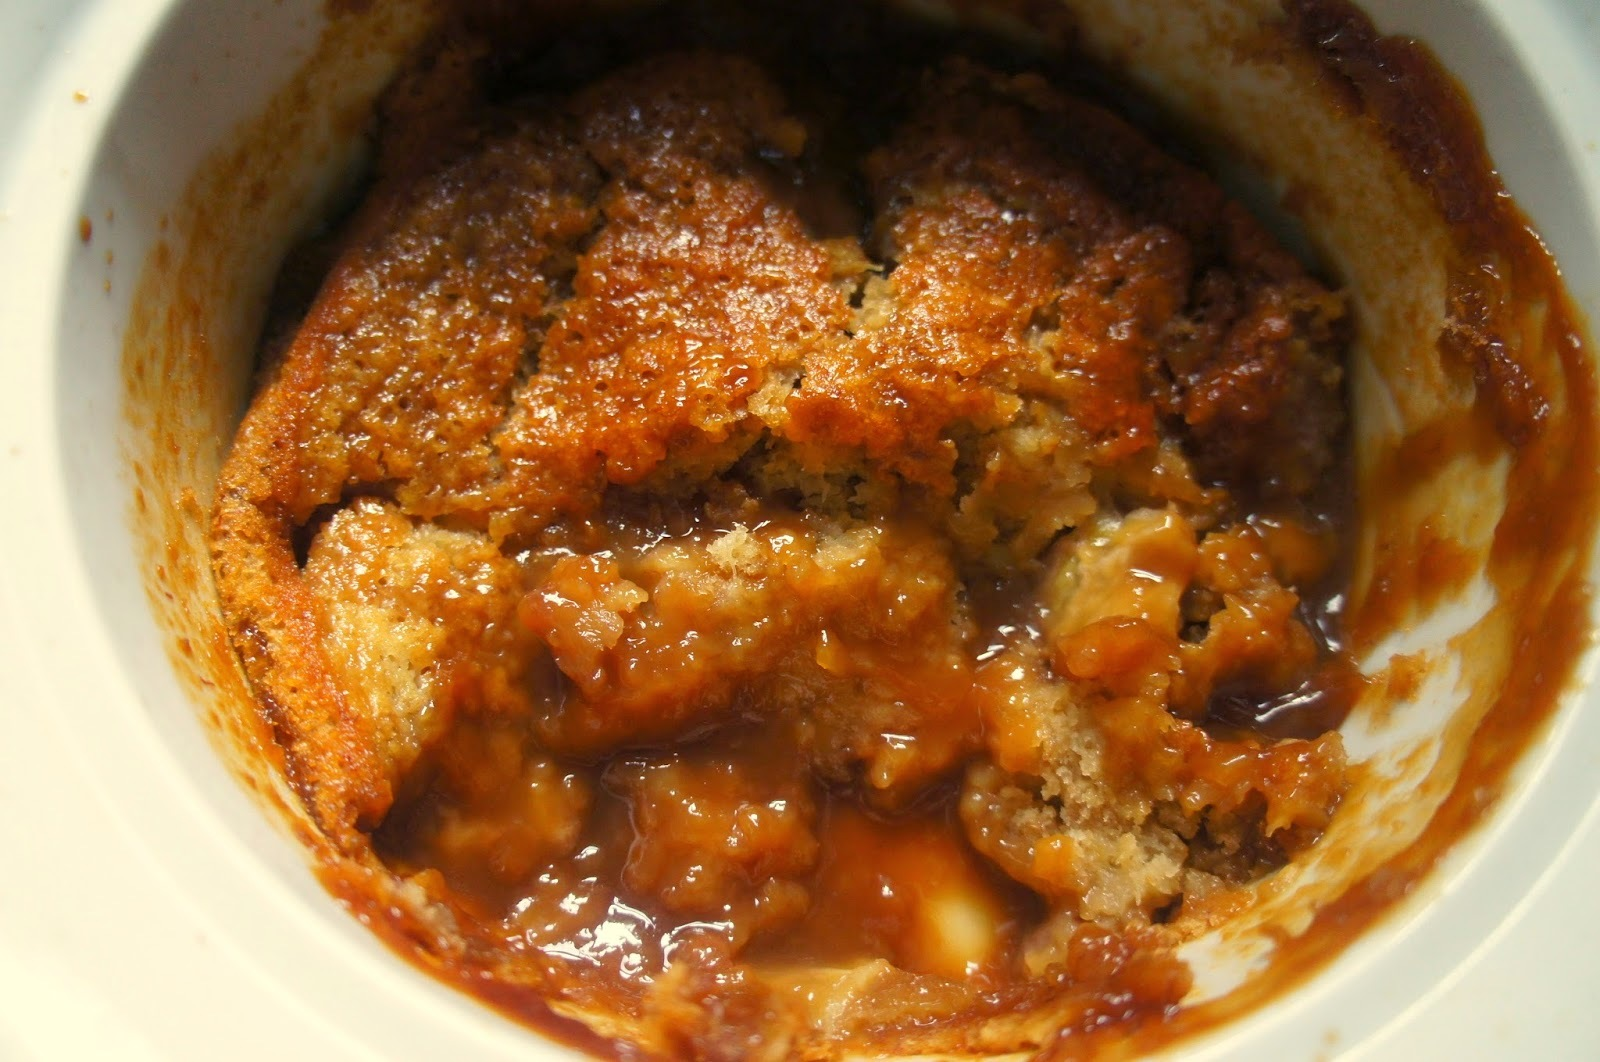 Vegan sticky banana pudding